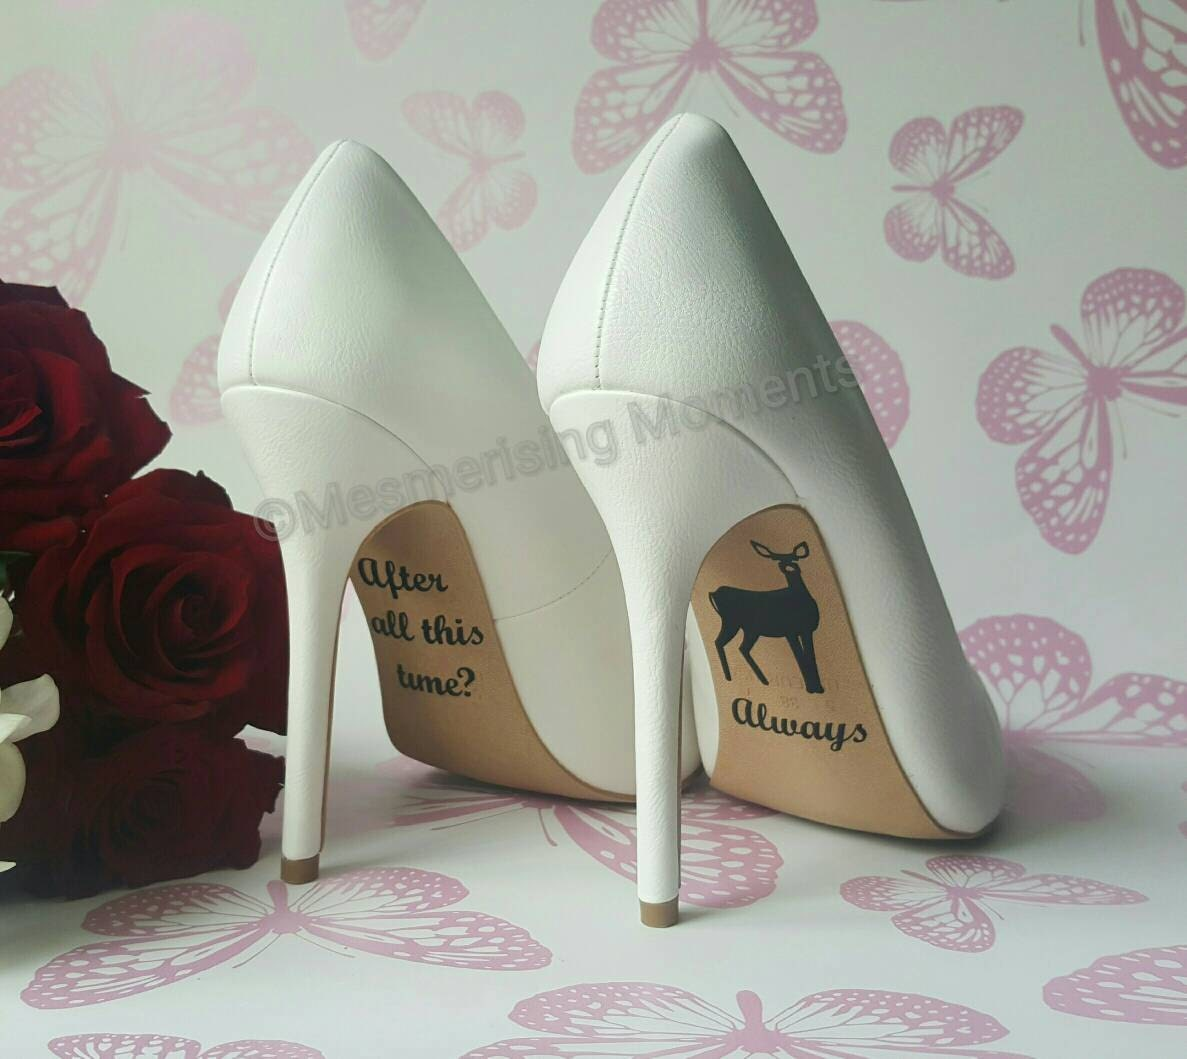 Harry Potter Inspired Wedding Shoe Decal After All This